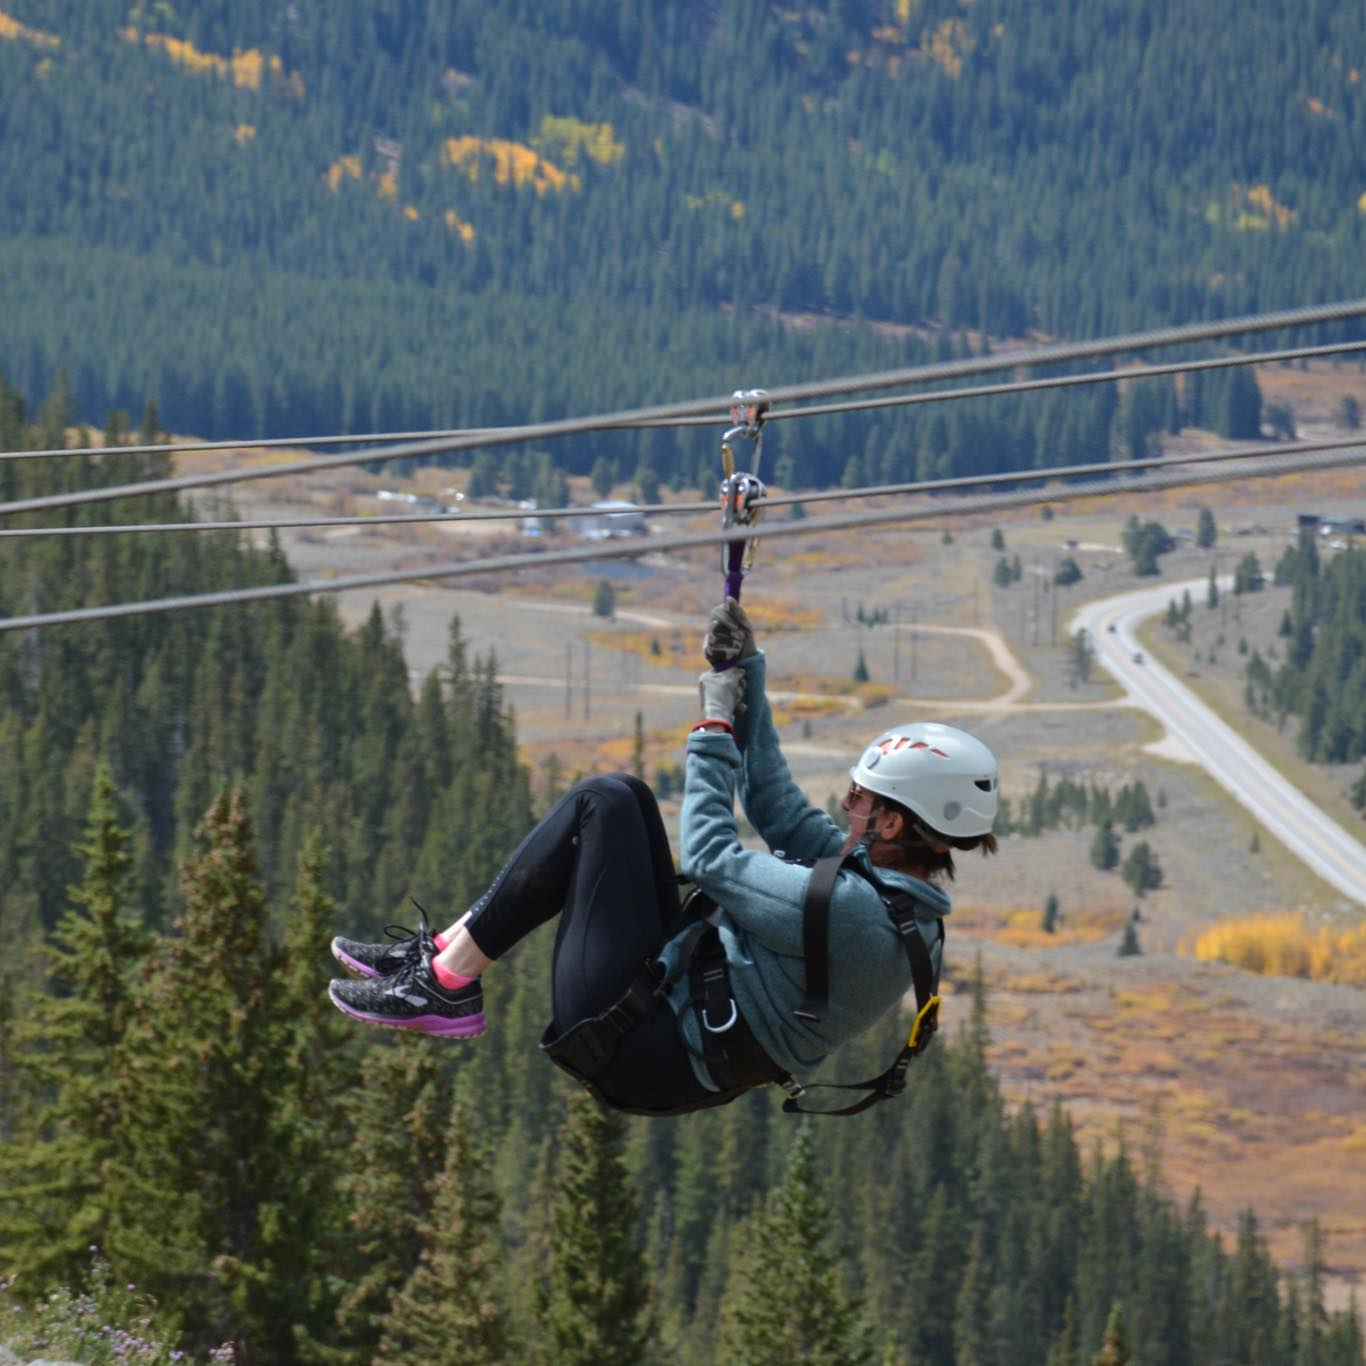 Melissa braved new heights and zip lined in the mountains of Vail!